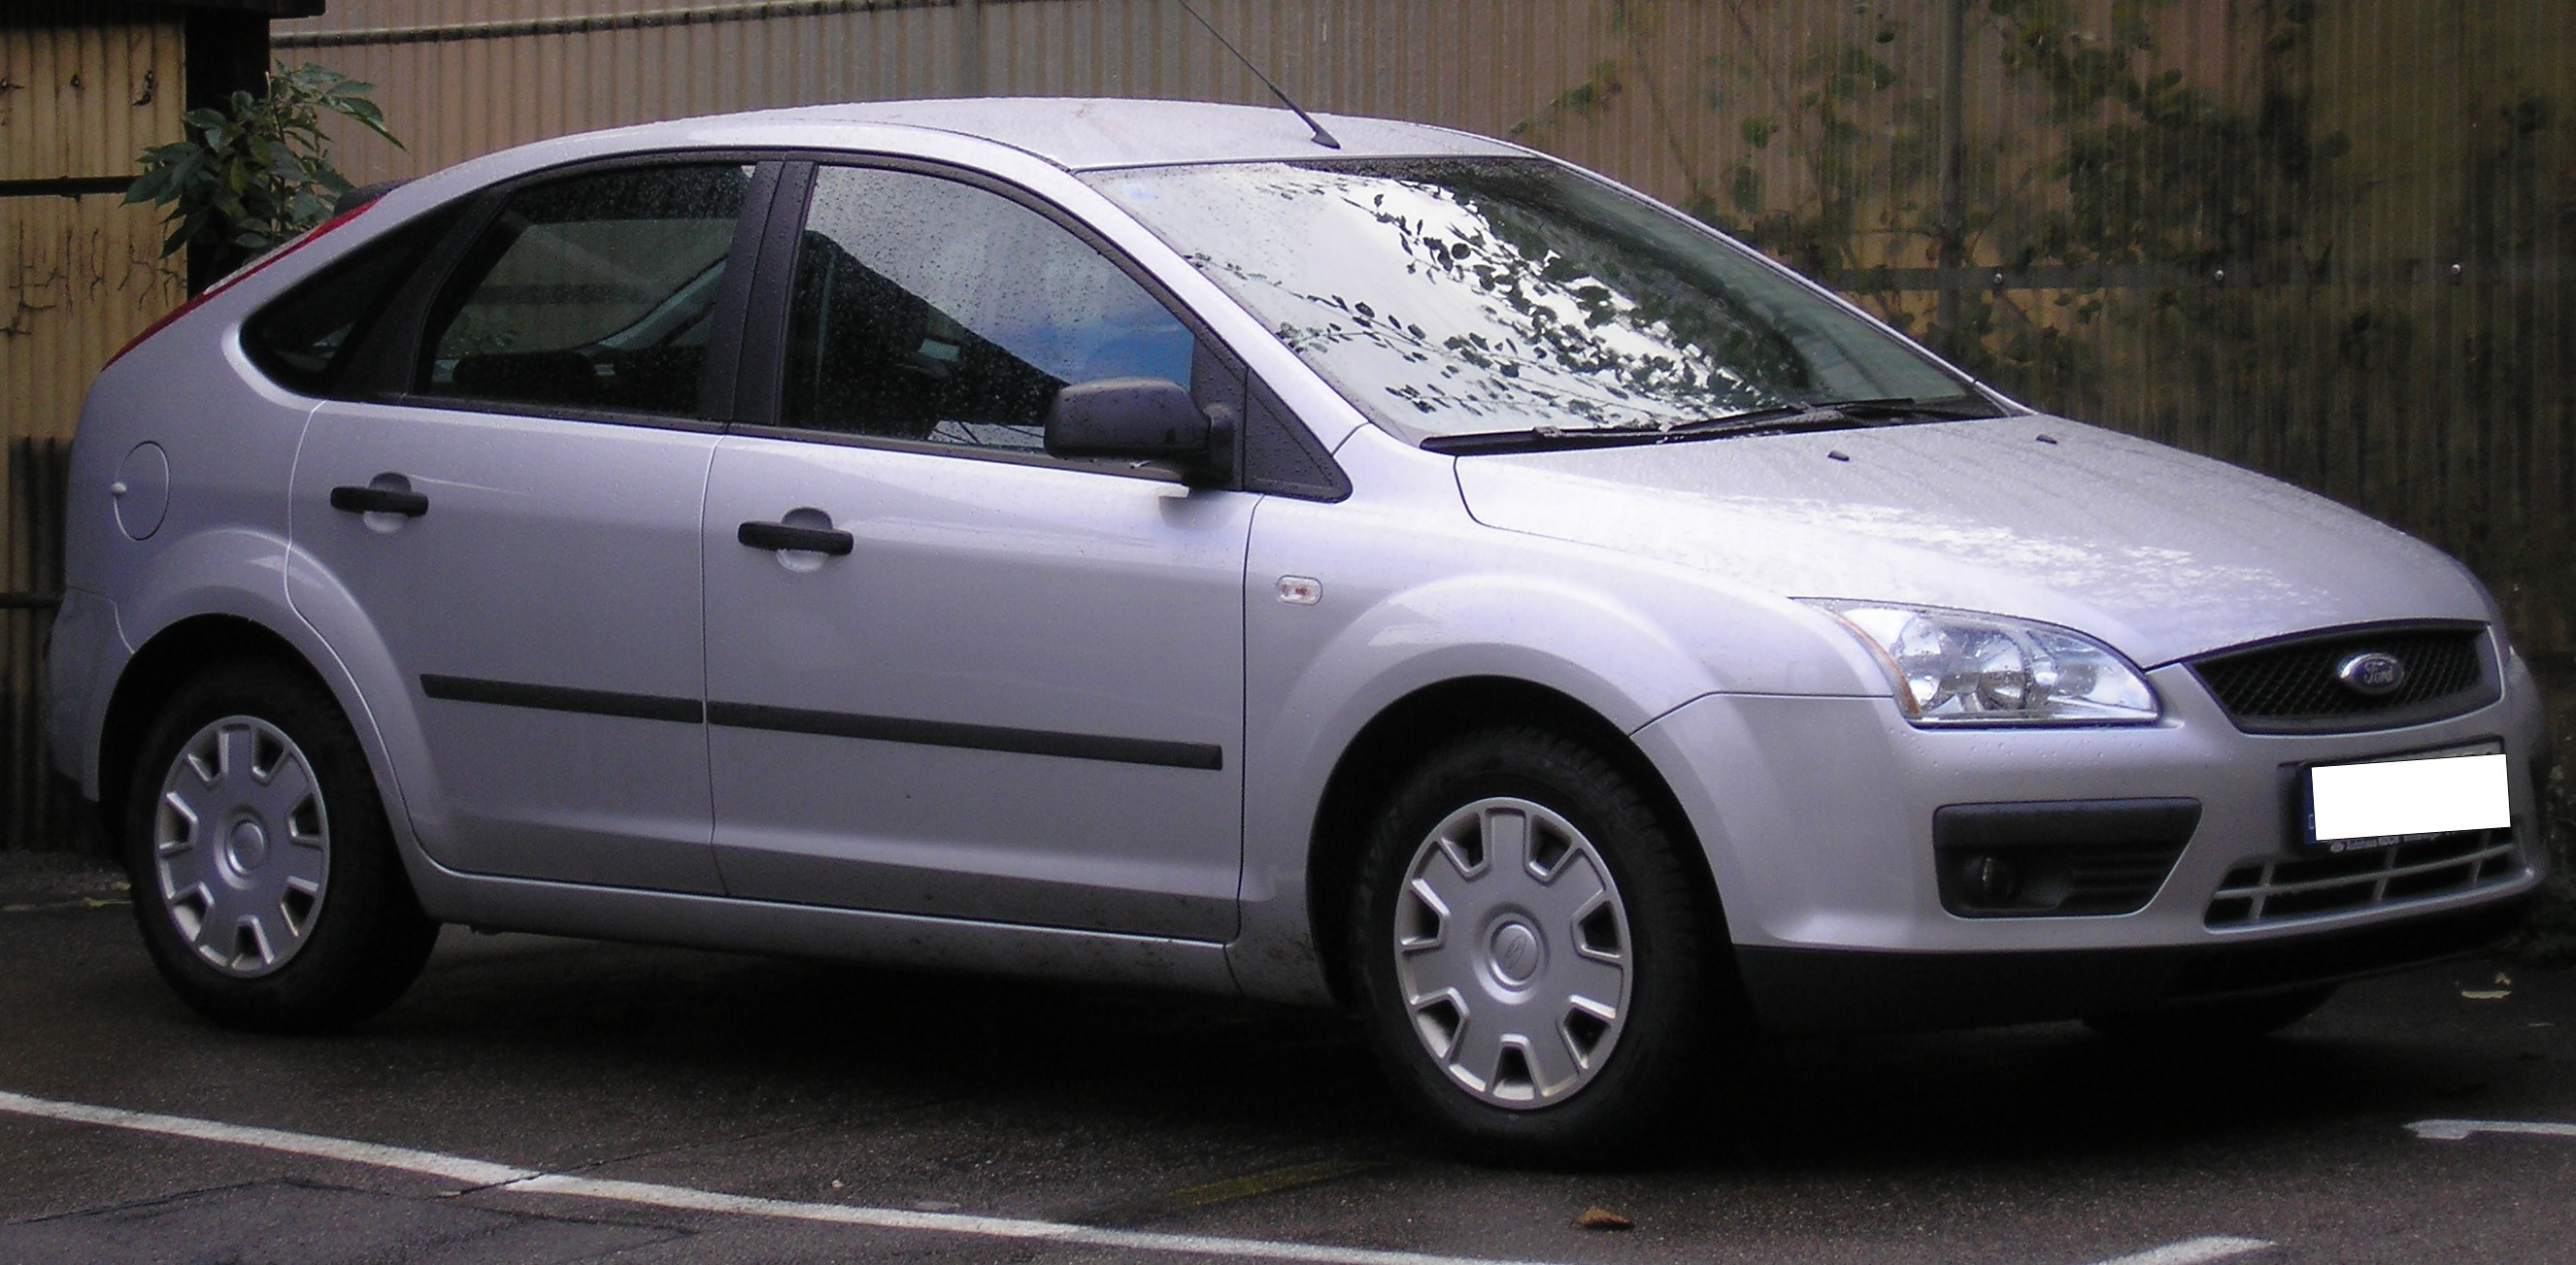 2005 ford focus ii pictures information and specs. Black Bedroom Furniture Sets. Home Design Ideas